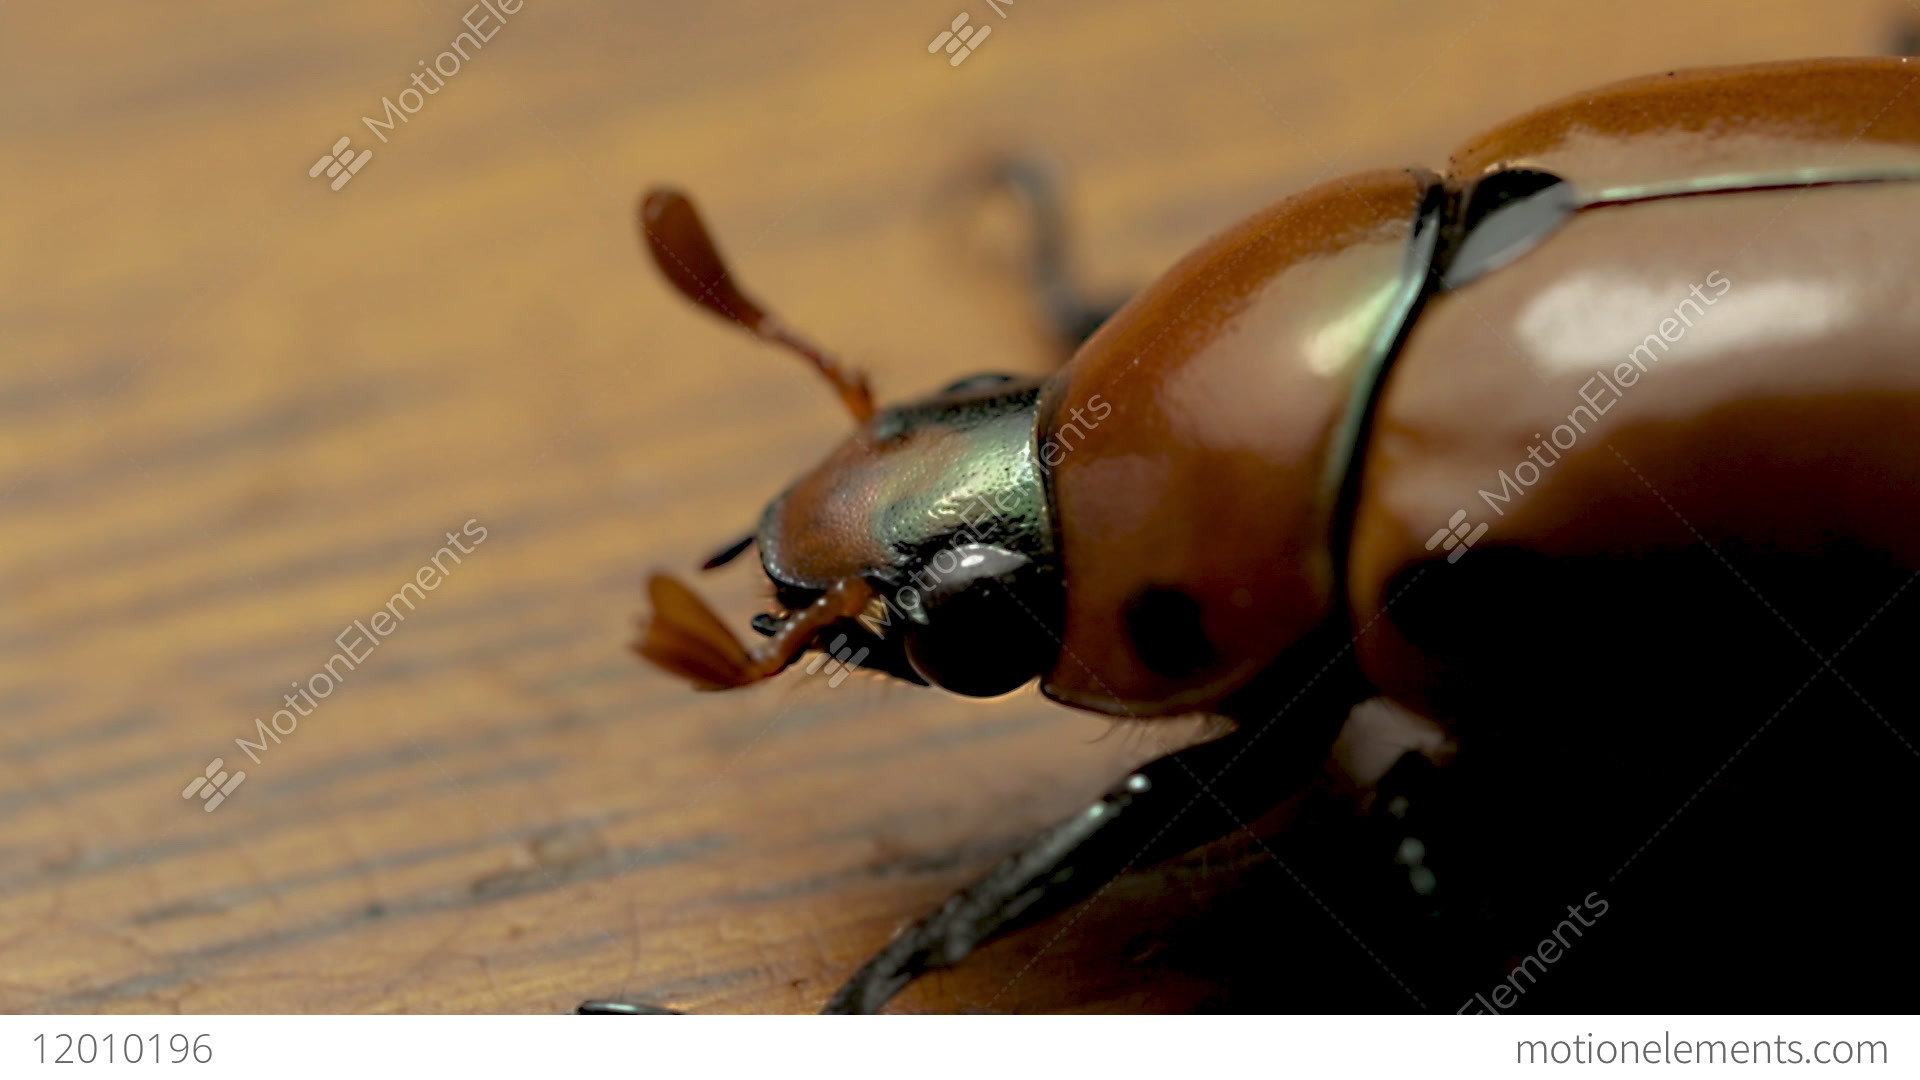 June Beetle: Pest, after whom the cocktail was named 38